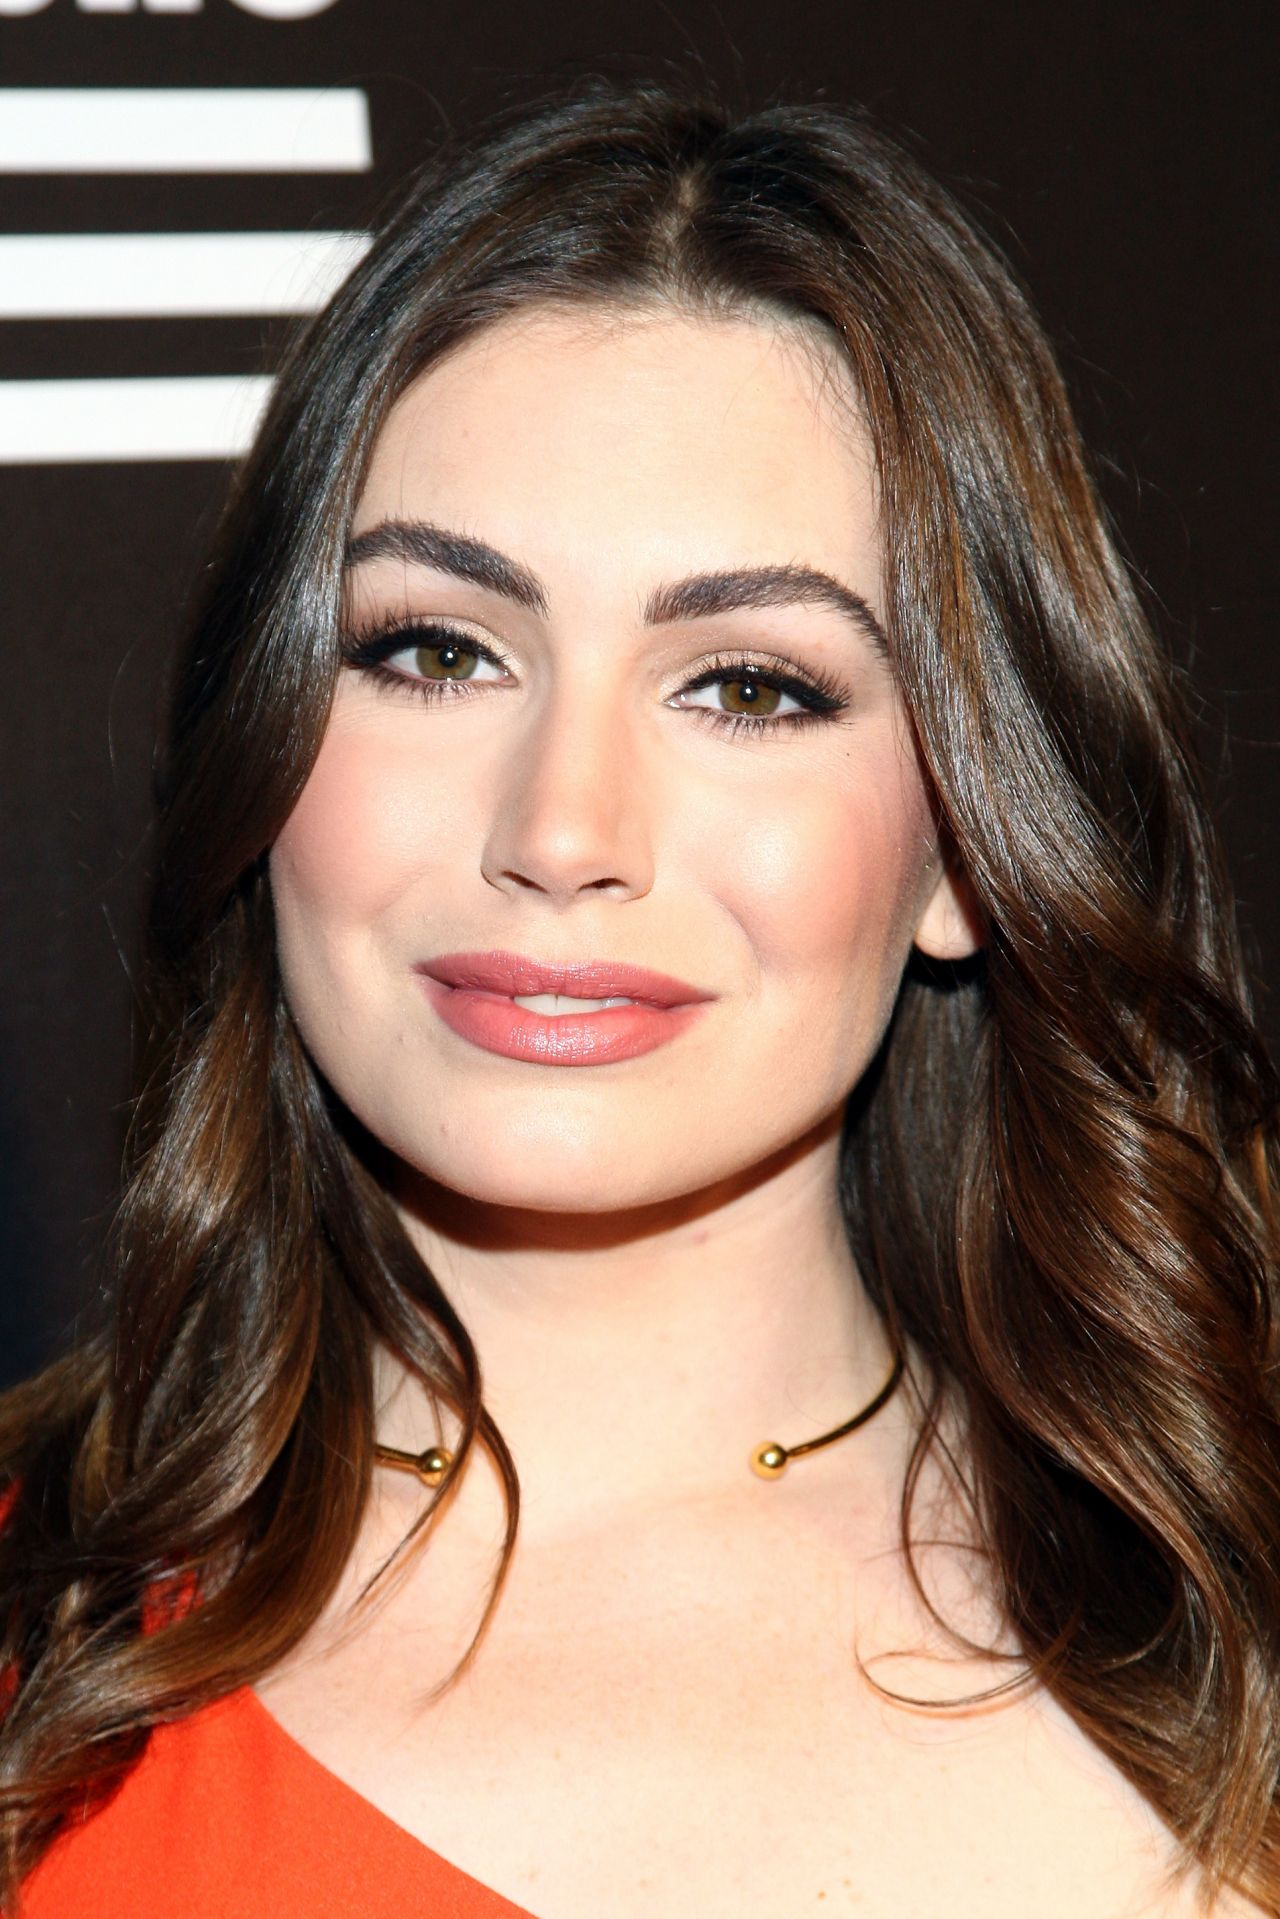 sophie simmons hotsophie simmons kiss, sophie simmons height, sophie simmons weight loss, sophie simmons photos, sophie simmons wiki, sophie simmons, sophie simmons instagram, sophie simmons wikipedia, sophie simmons x factor, sophie simmons snapchat, sophie simmons maxim, sophie simmons facebook, sophie simmons tweed, sophie simmons net worth, sophie simmons car accident, sophie simmons feet, sophie simmons 2015, sophie simmons birthmark, sophie simmons hot, sophie simmons boyfriend